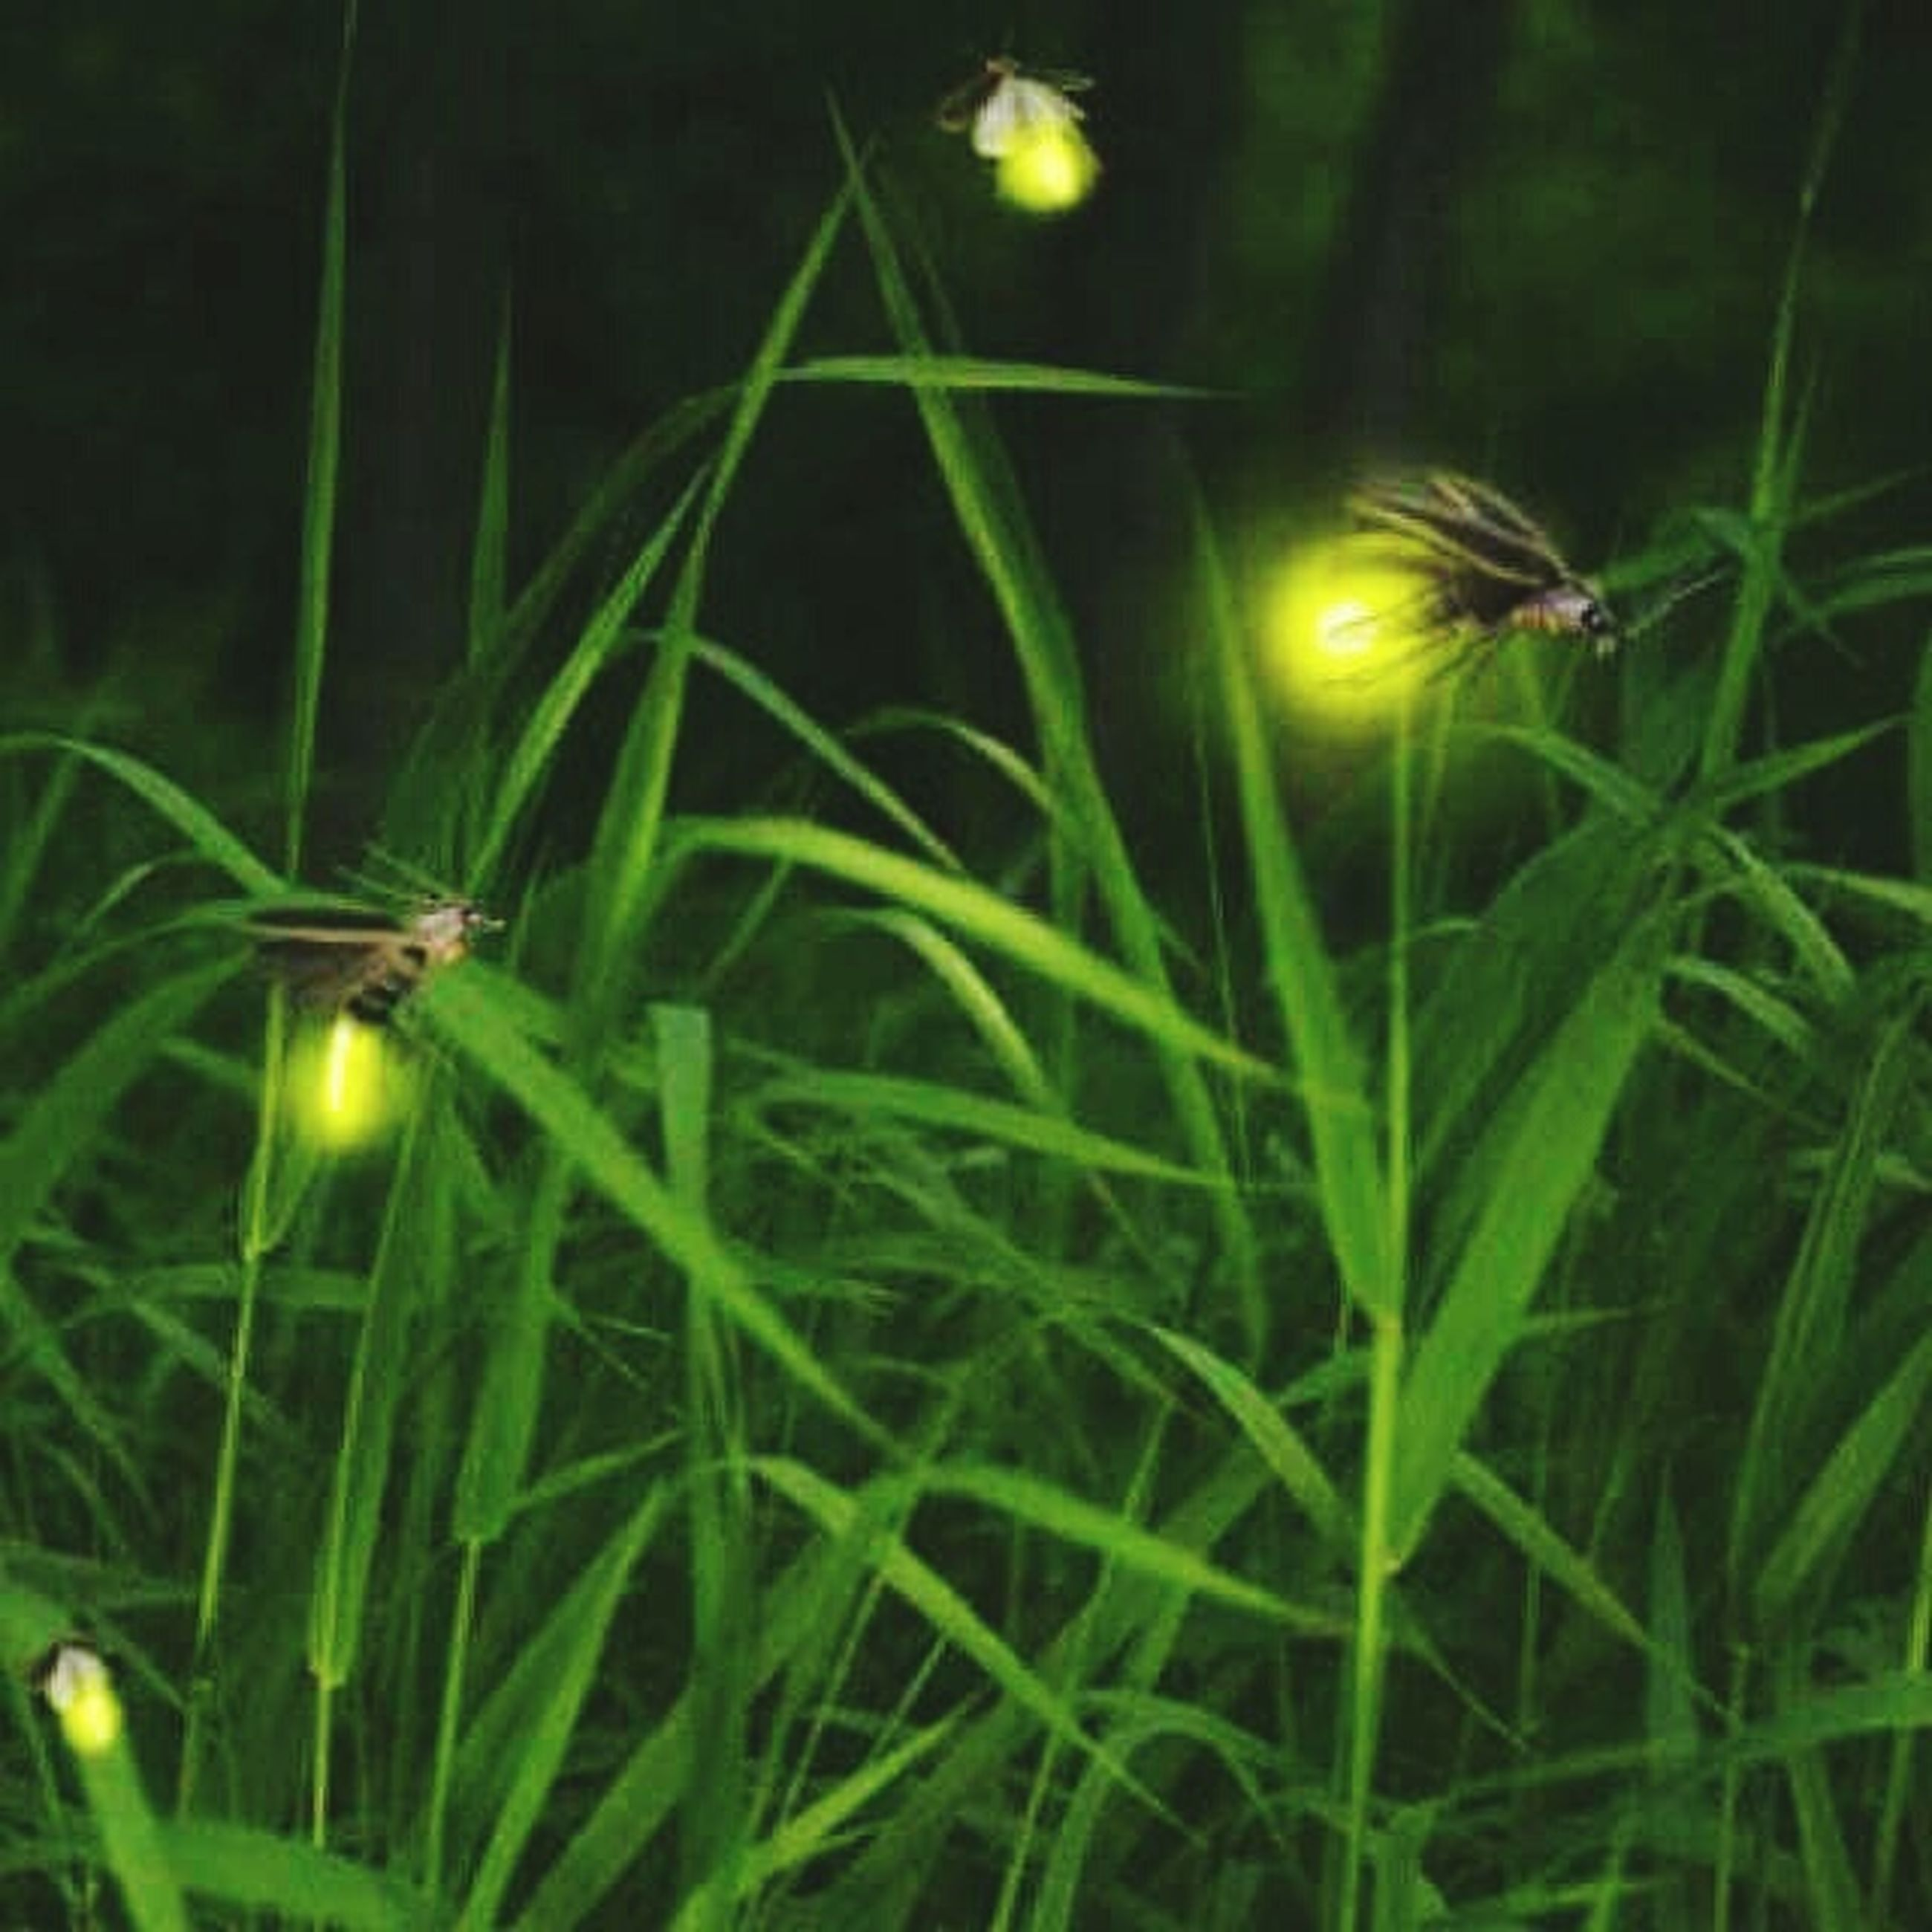 growth, green color, plant, grass, nature, close-up, beauty in nature, freshness, field, night, blade of grass, selective focus, green, tranquility, outdoors, fragility, focus on foreground, no people, leaf, growing